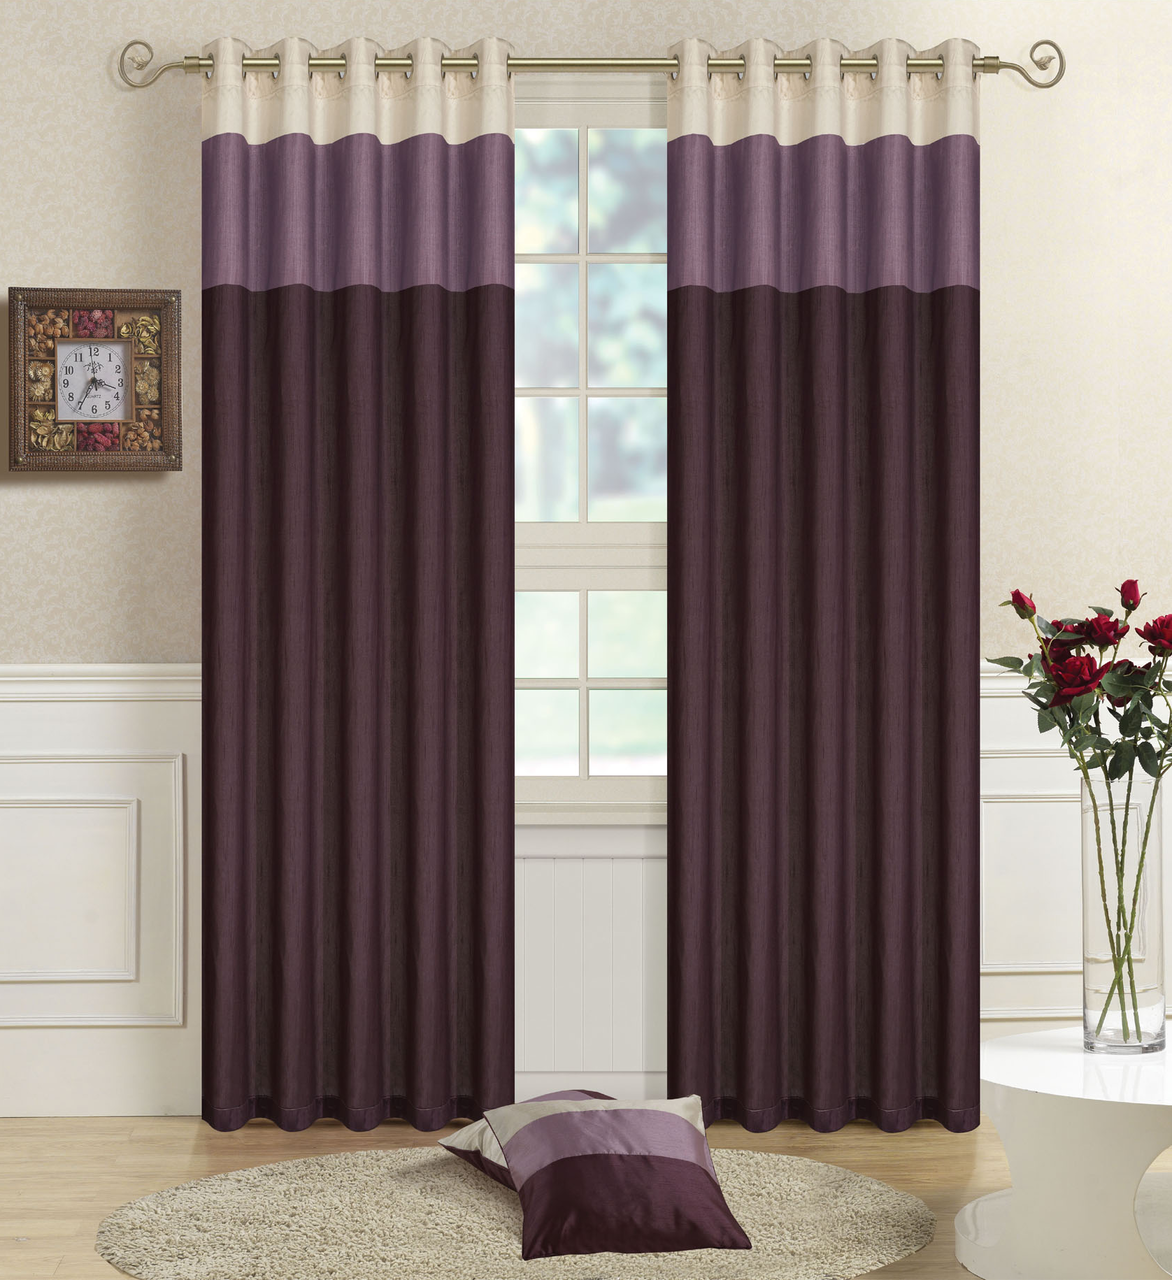 Marvelous Purple Bedroom Curtain Ideas Part - 9: Sweet Violet Bedroom Curtain Photos Collection : Fabulous Violet Bedroom  Curtain With Beige Wall Painting And